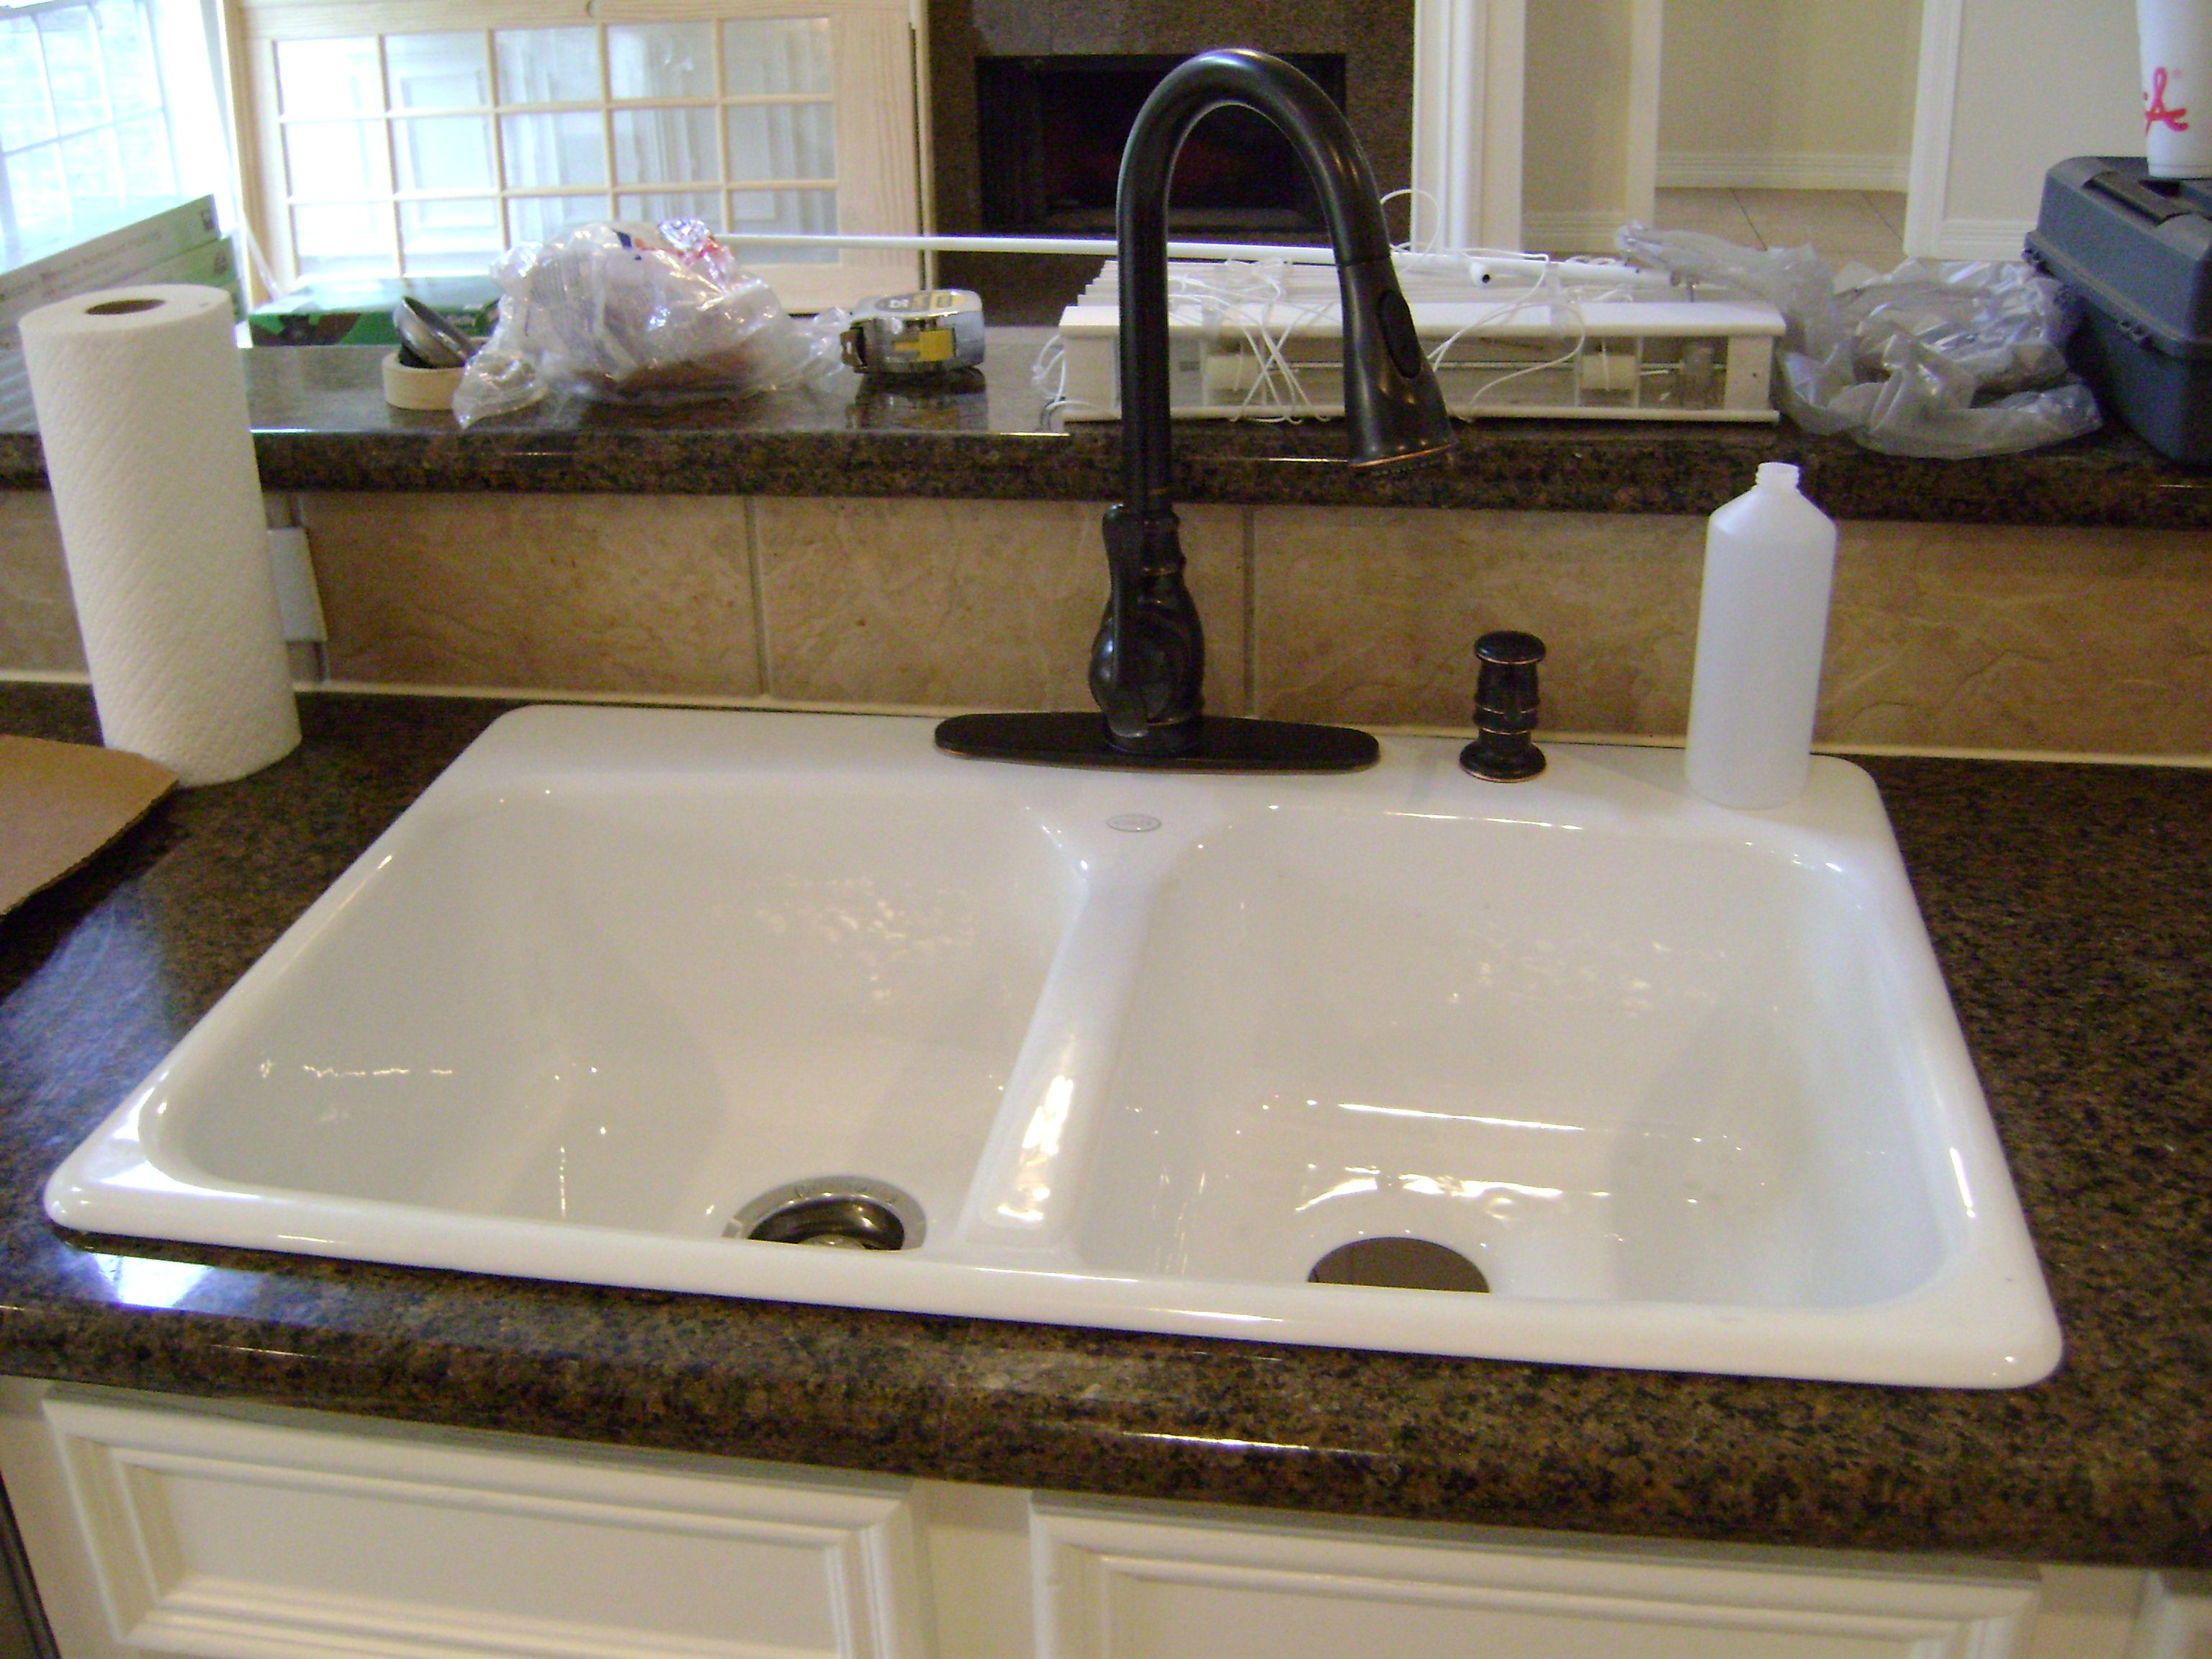 White Cabinets White Sink Bronze Hardware And Brown Neutral Counters Wall Mount Kitchen Faucet Kitchen Faucet With Sprayer Kitchen Sink Fixture